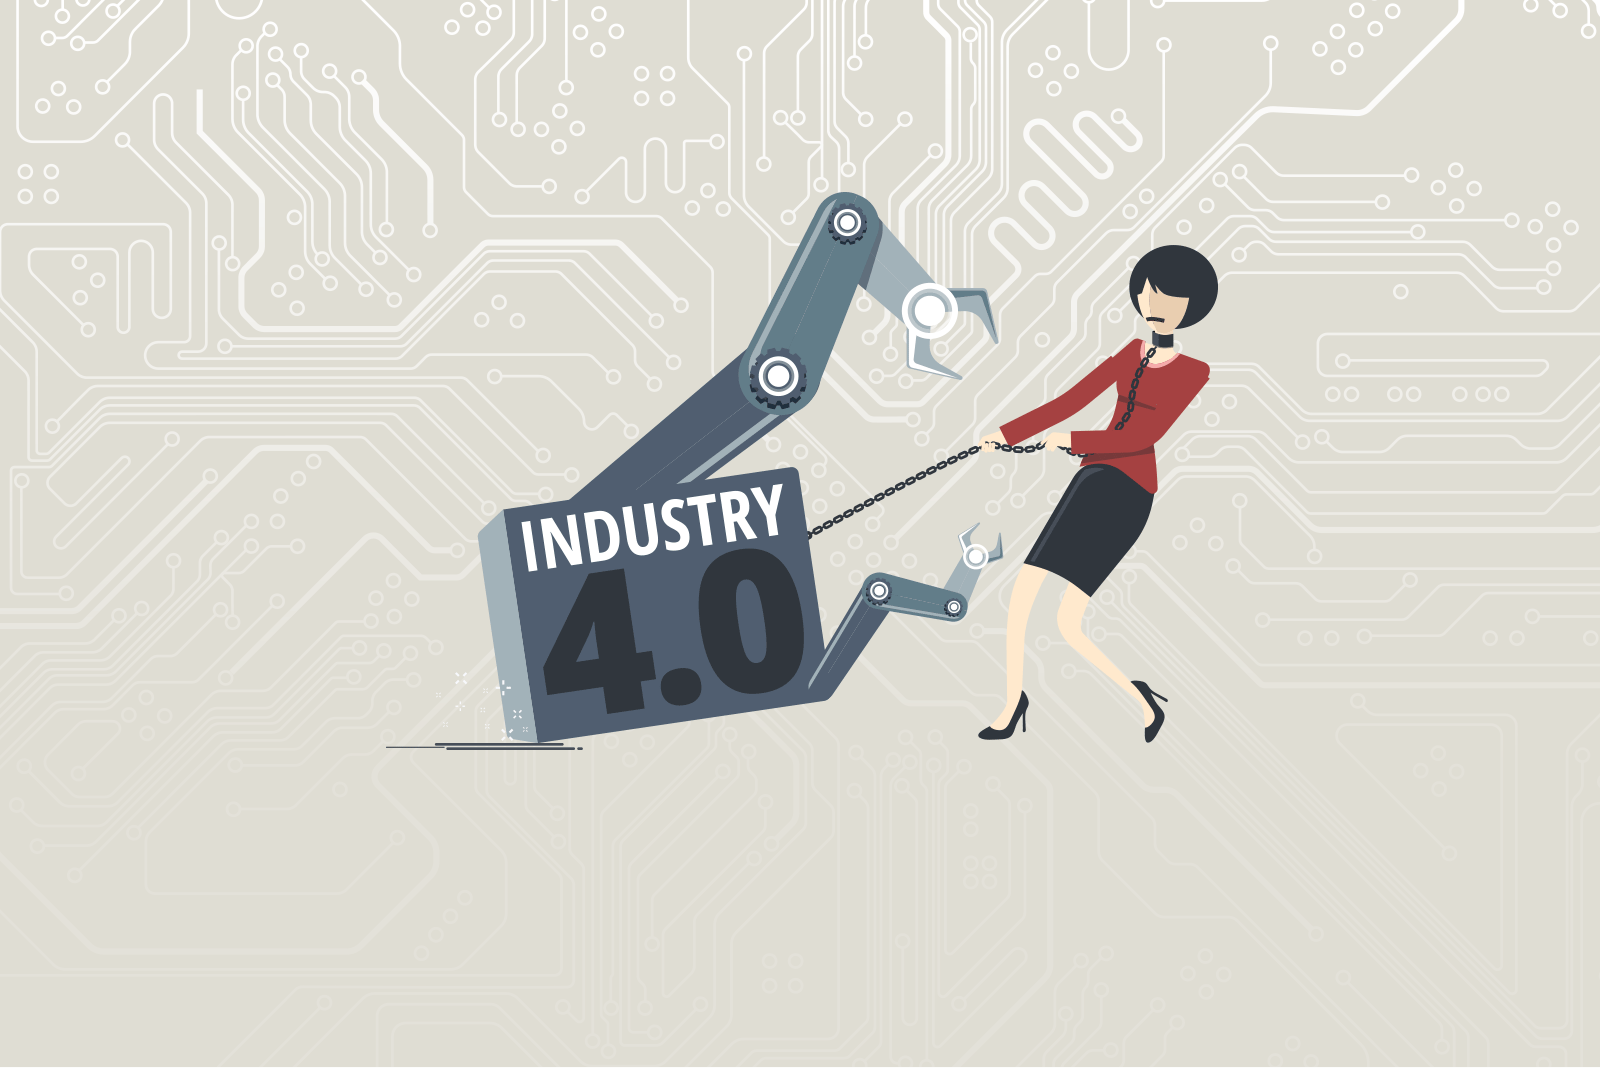 Industry 4.0: Illustrations shows fear of keeping control of their jobs in times of digitisation